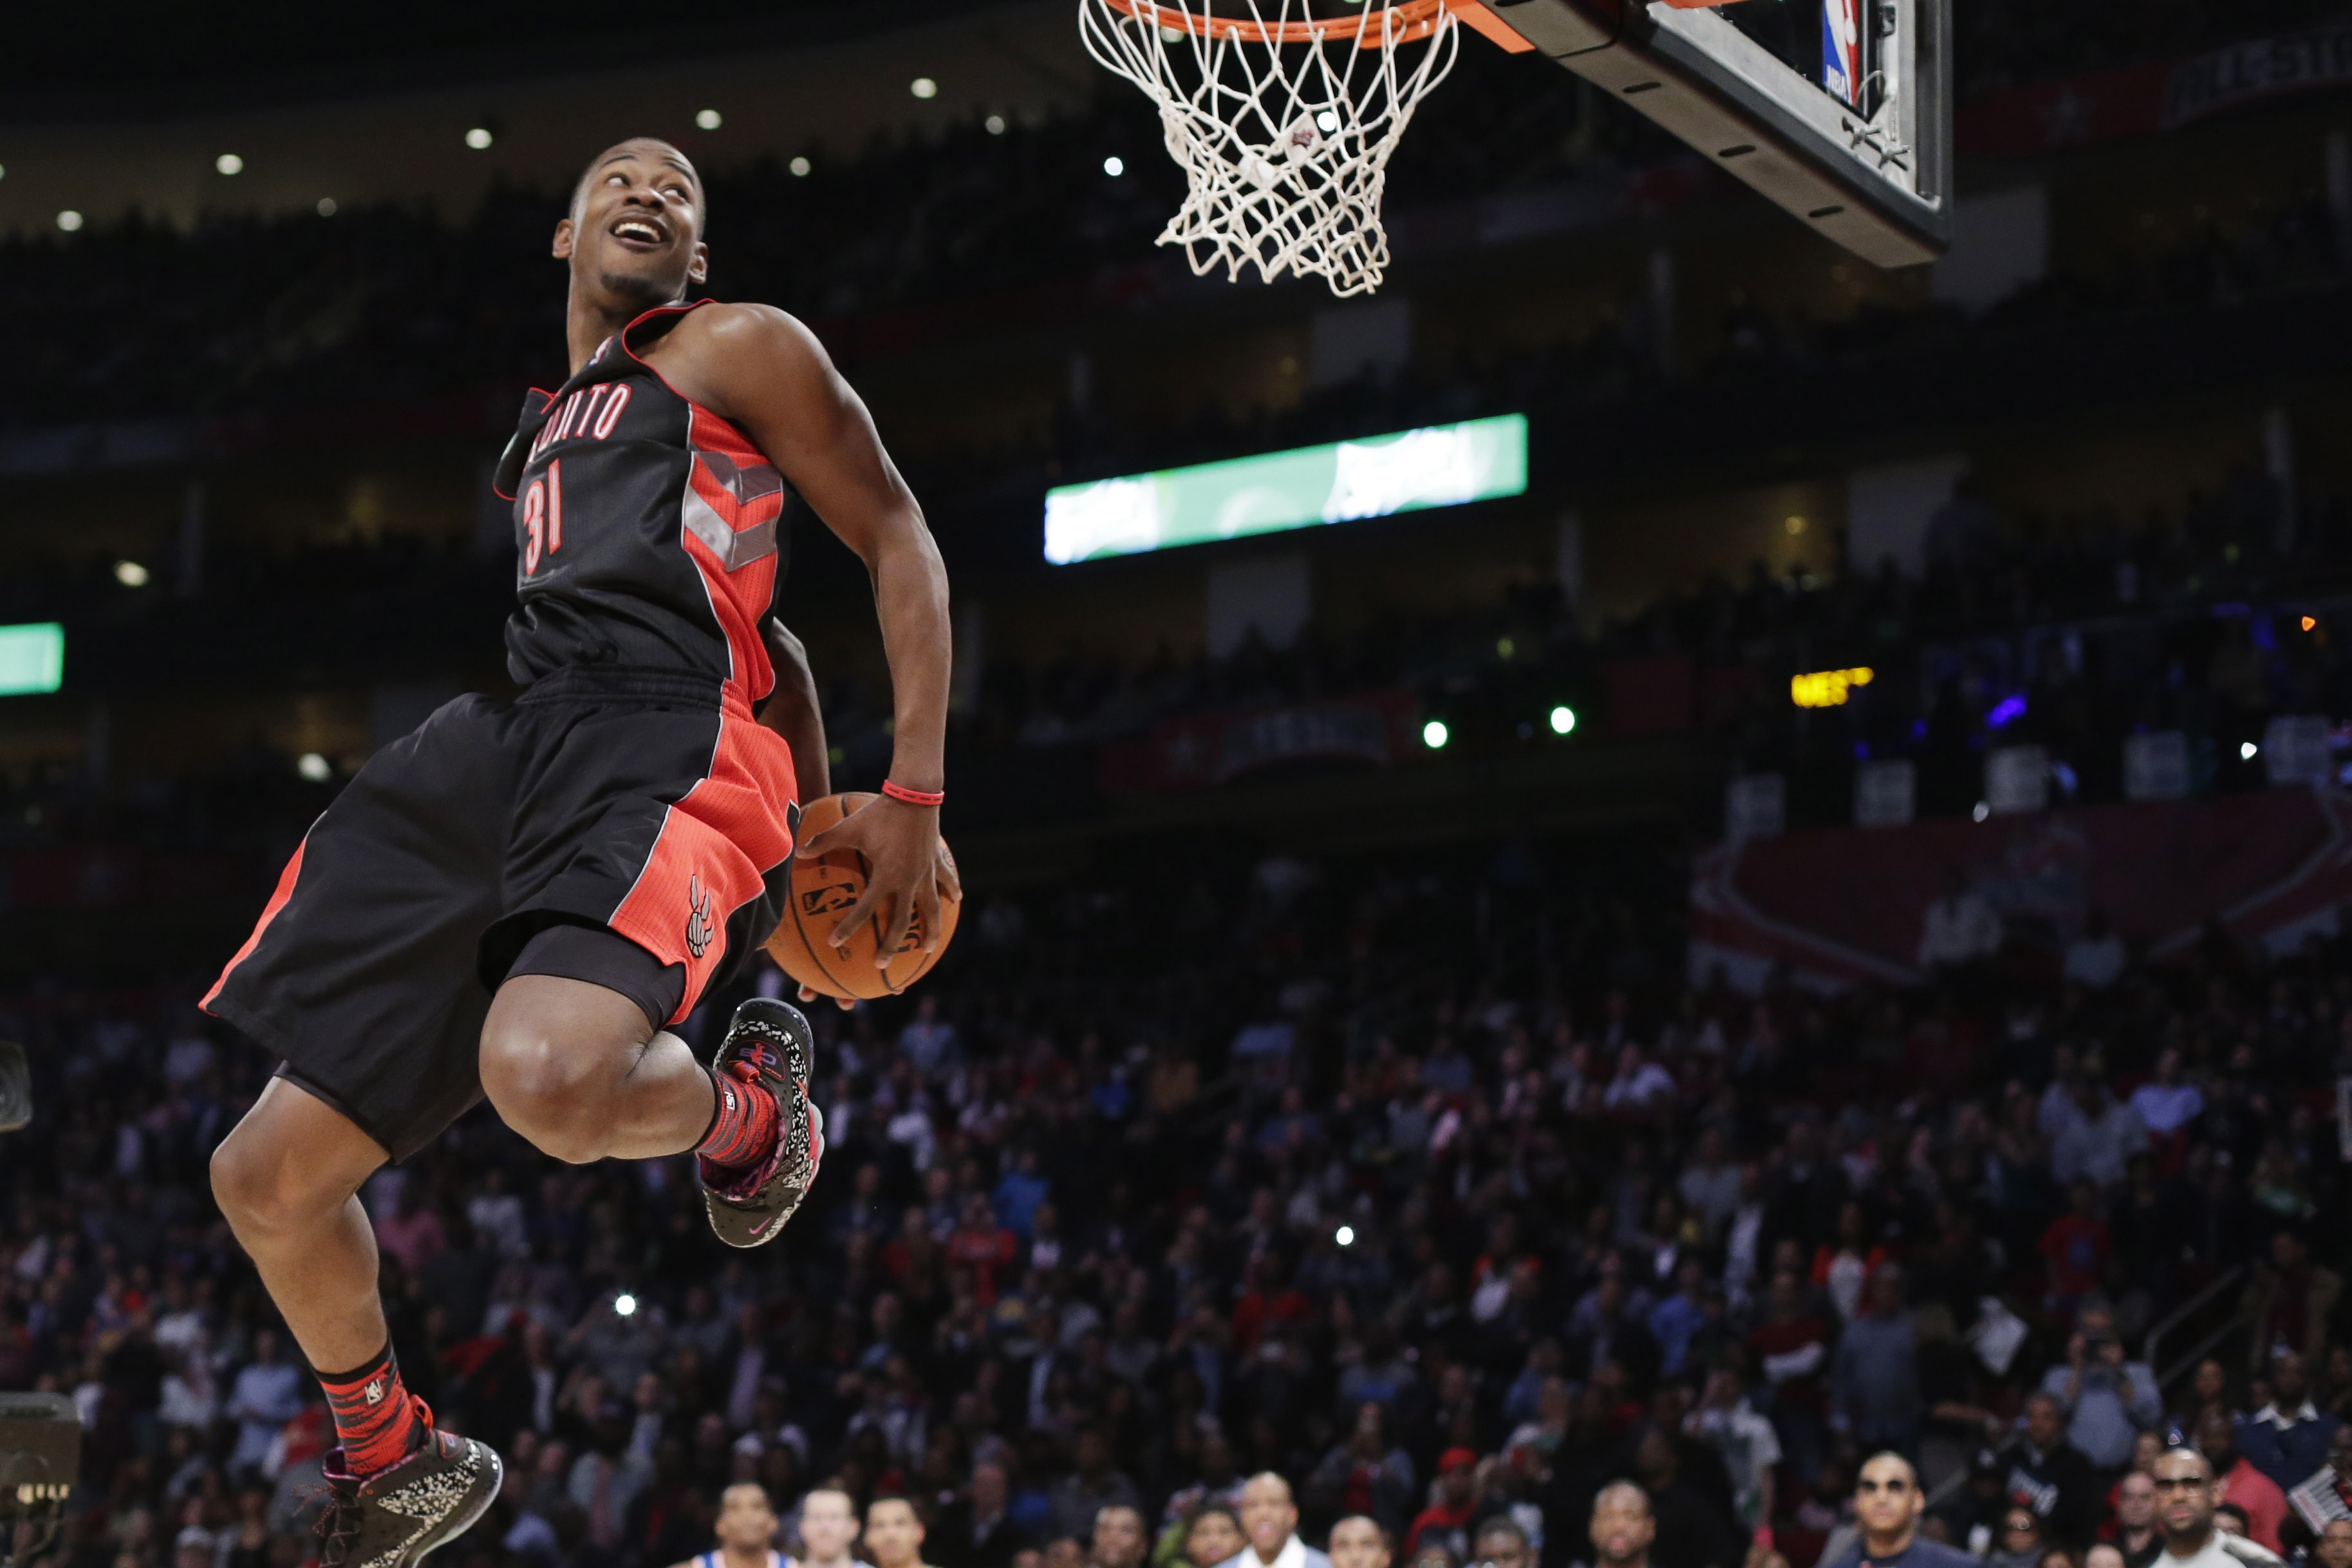 Raptors rookie Terrence Ross wins slam dunk contest - CityNews